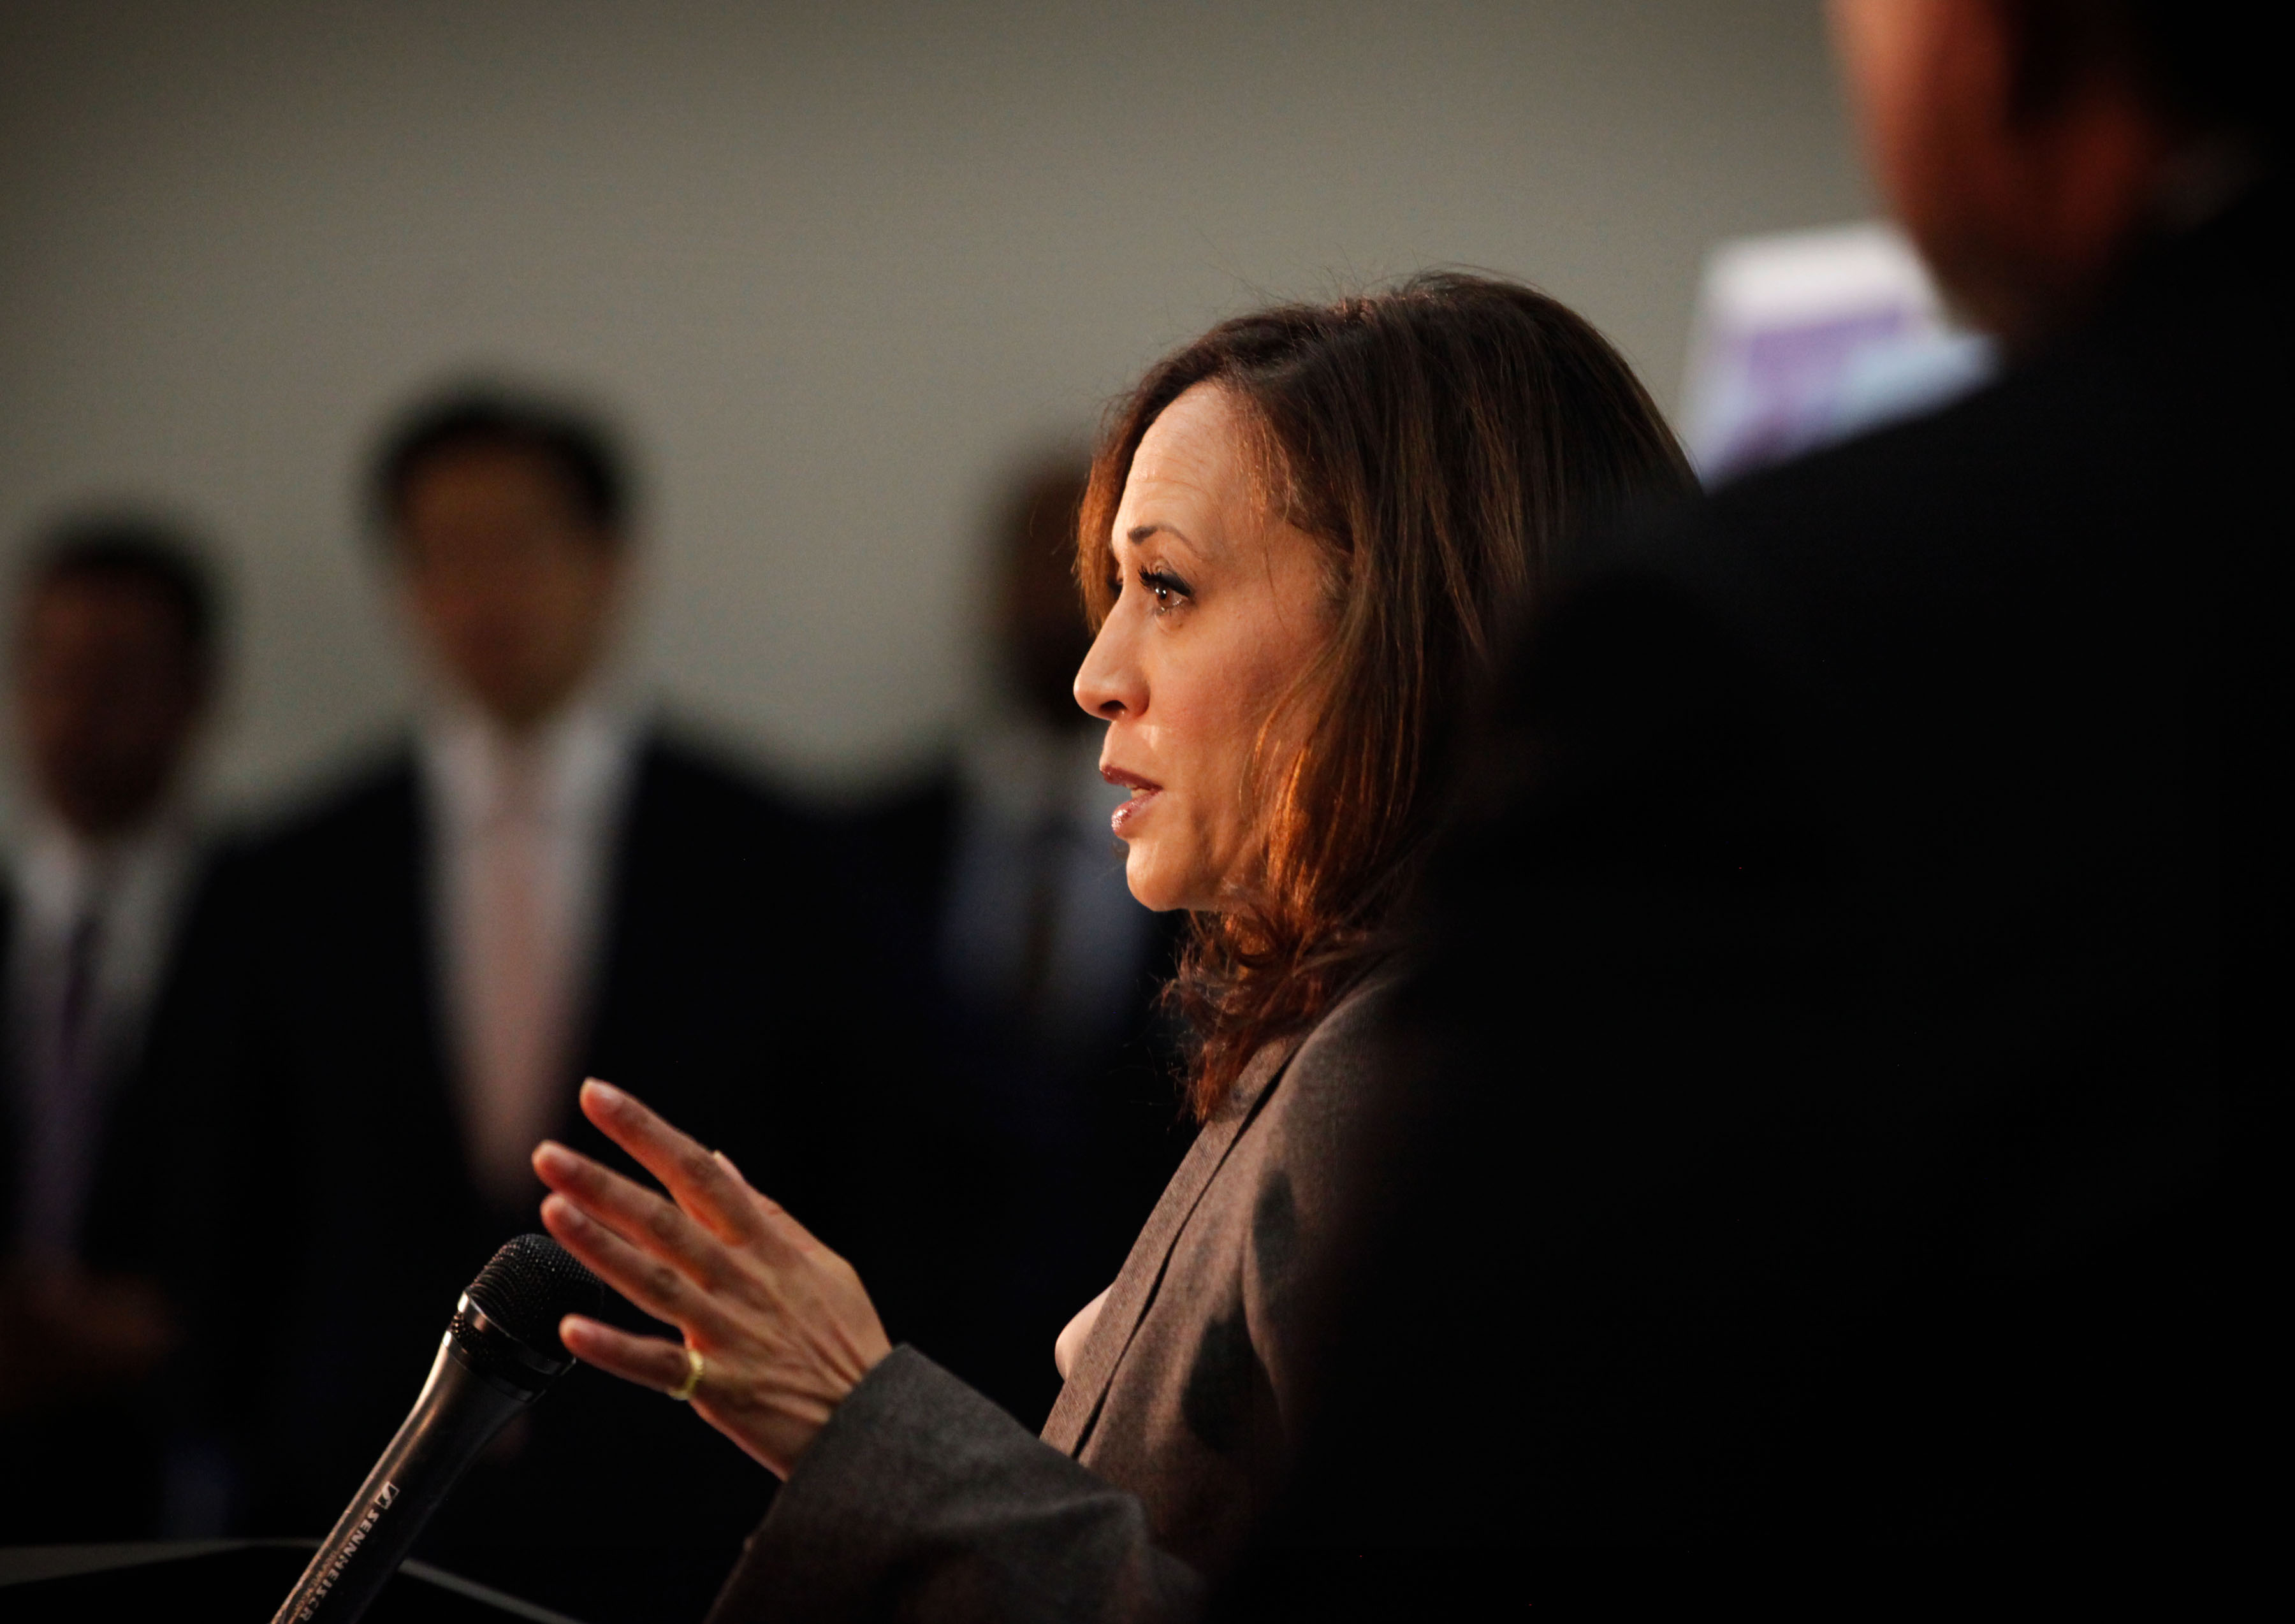 LOSANGELES, CA 0320- Attorney General Kamala D. Harris,  joined by law enforcement officials includi